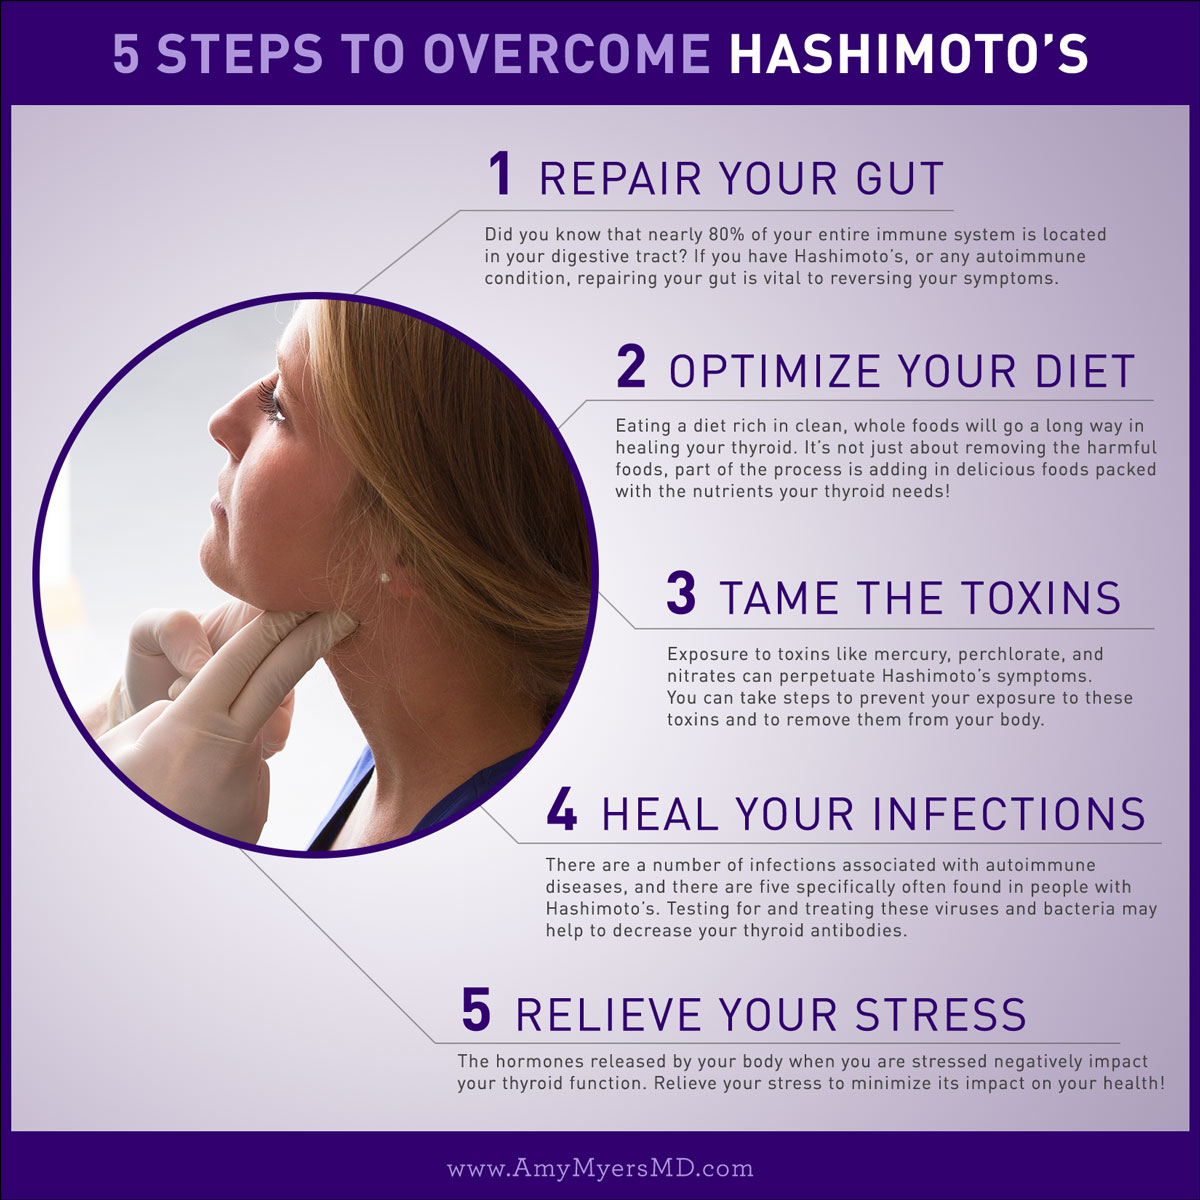 5 Steps to Overcome Hashimoto's - Infographic - Amy Myers MD